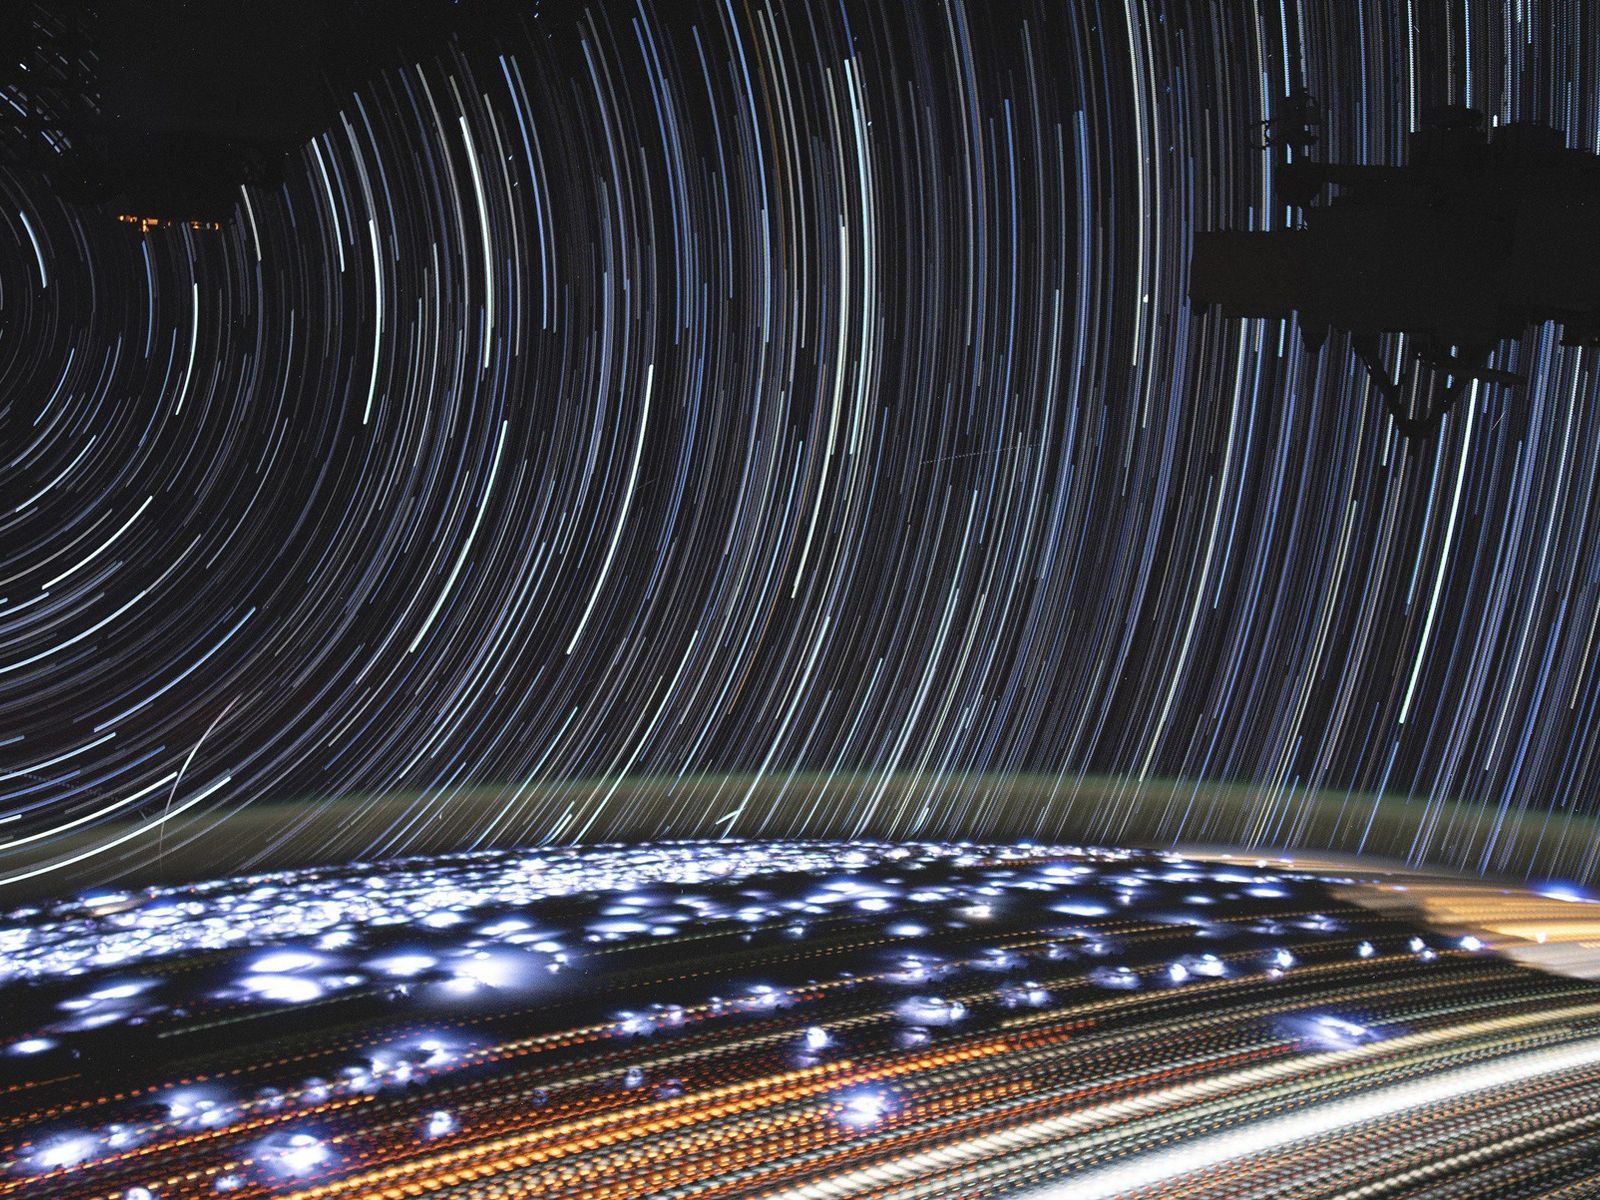 NASA astronaut Christina Koch compiled this stunning long-exposure picture of Earth against a backdrop of wheeling ...